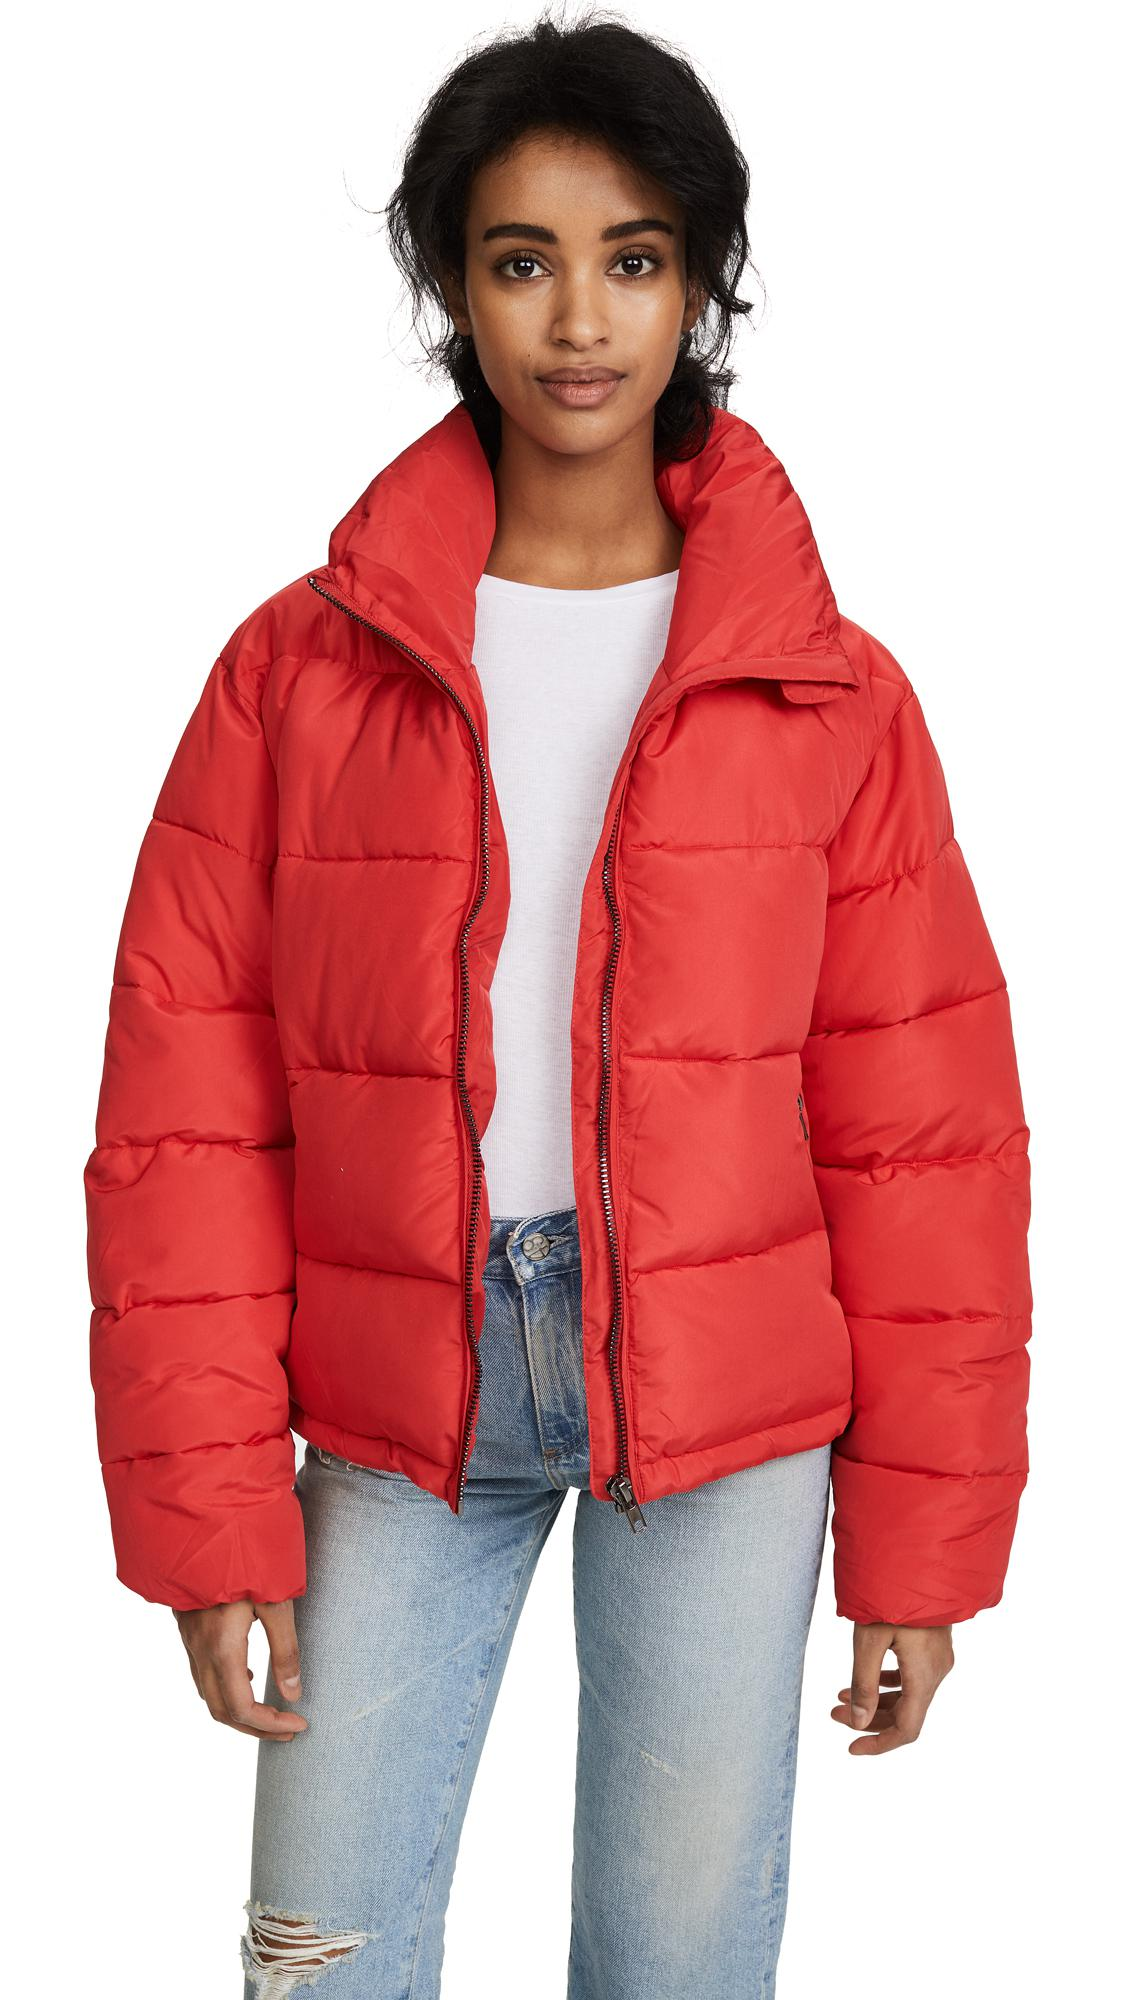 d302b6c0ad68 Lyst - Glamorous Cropped Puffer Coat in Red